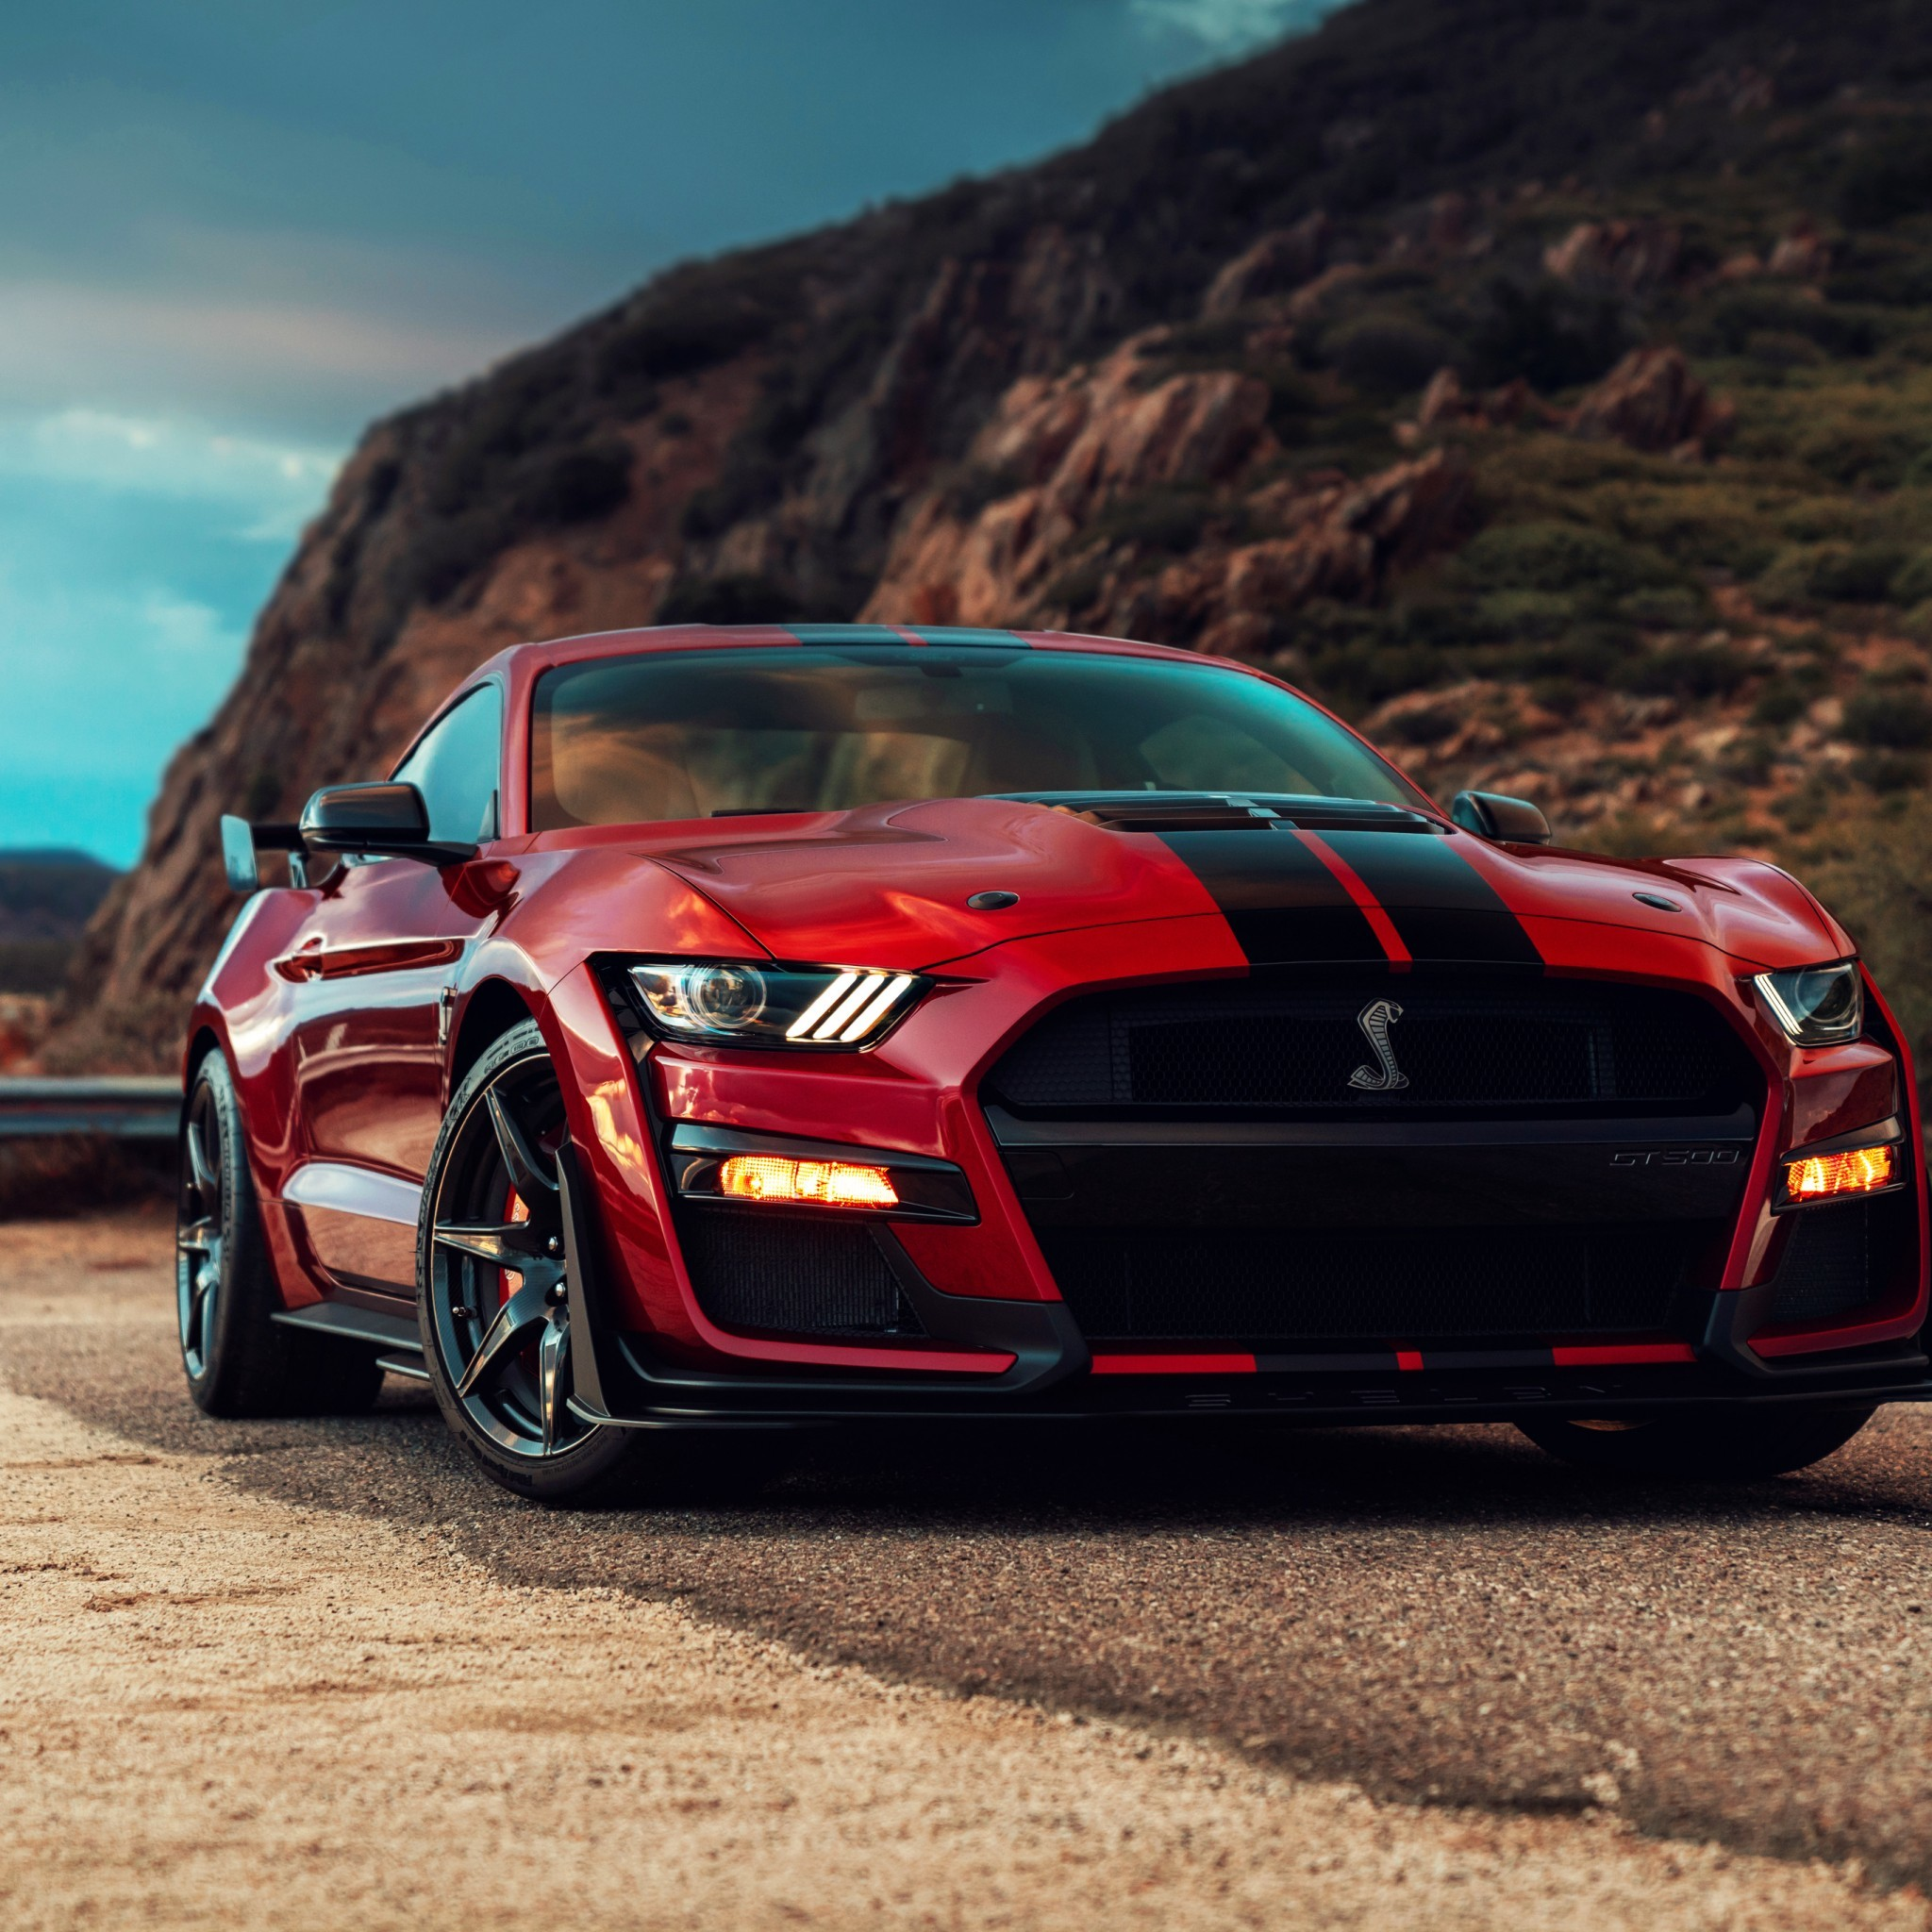 Res: 2048x2048, Ford Mustang Shelby GT500 Wallpaper